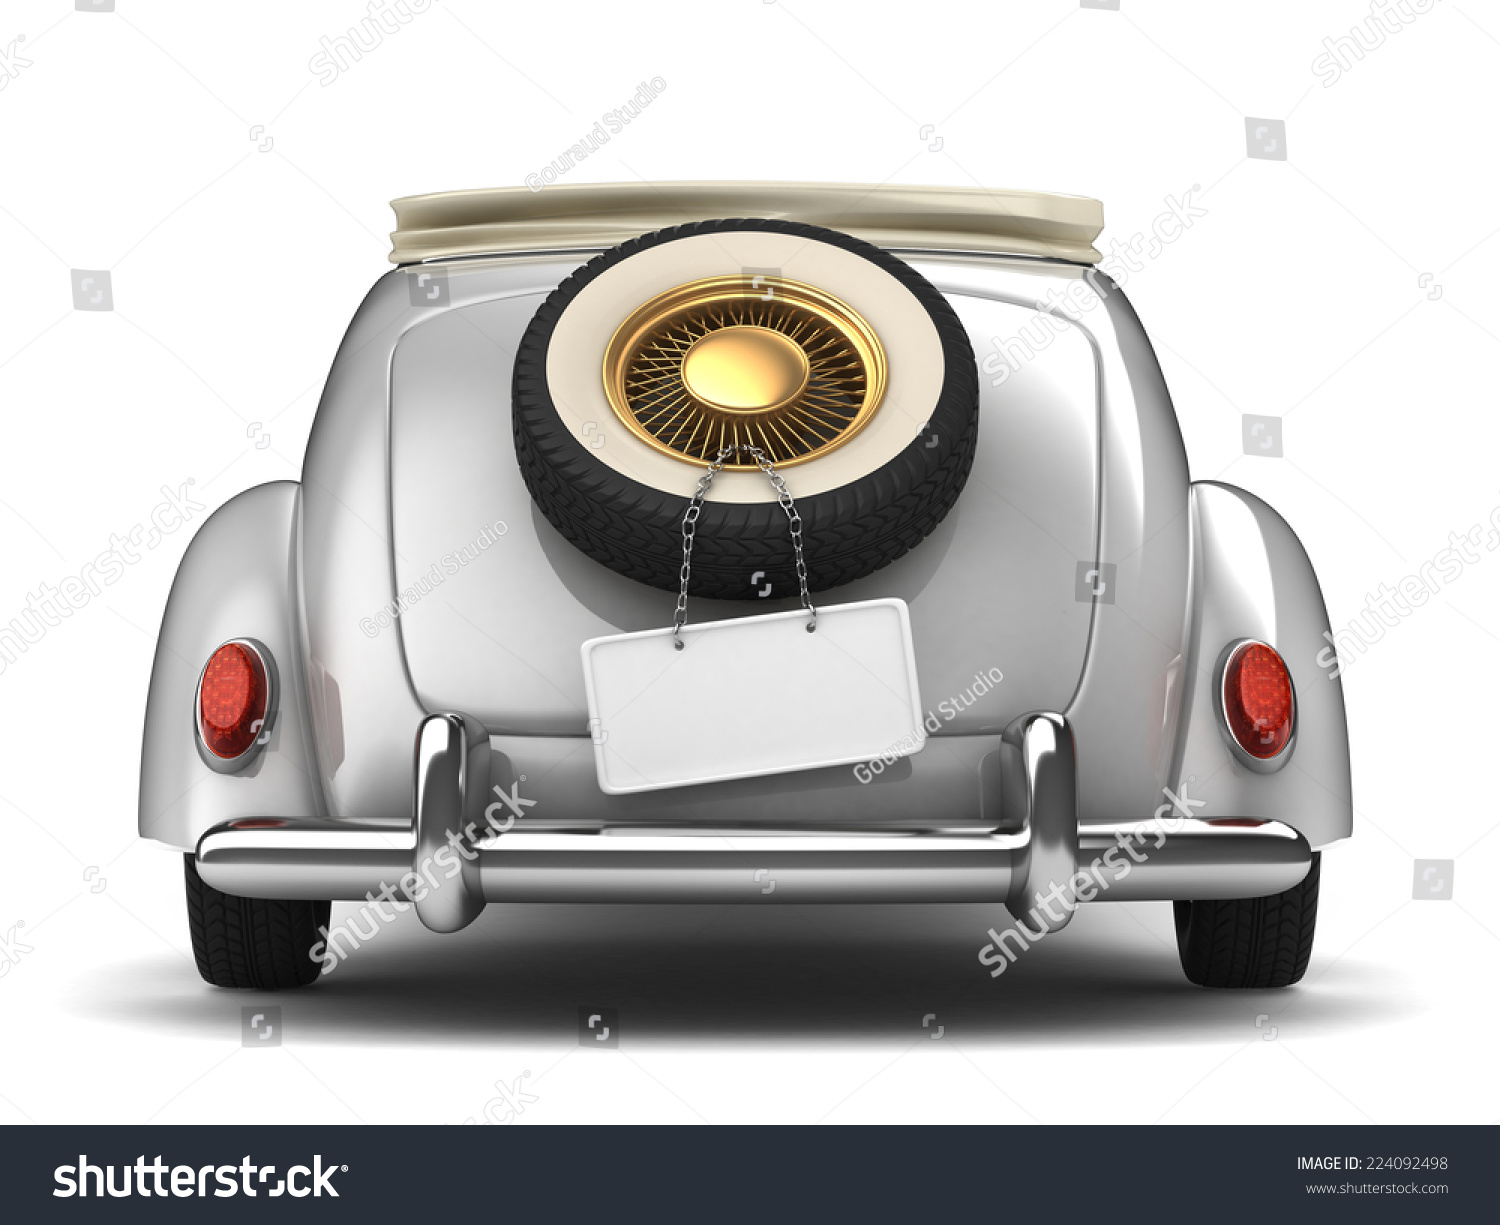 Vintage White Bridal Car Stock Illustration 224092498 Shutterstock